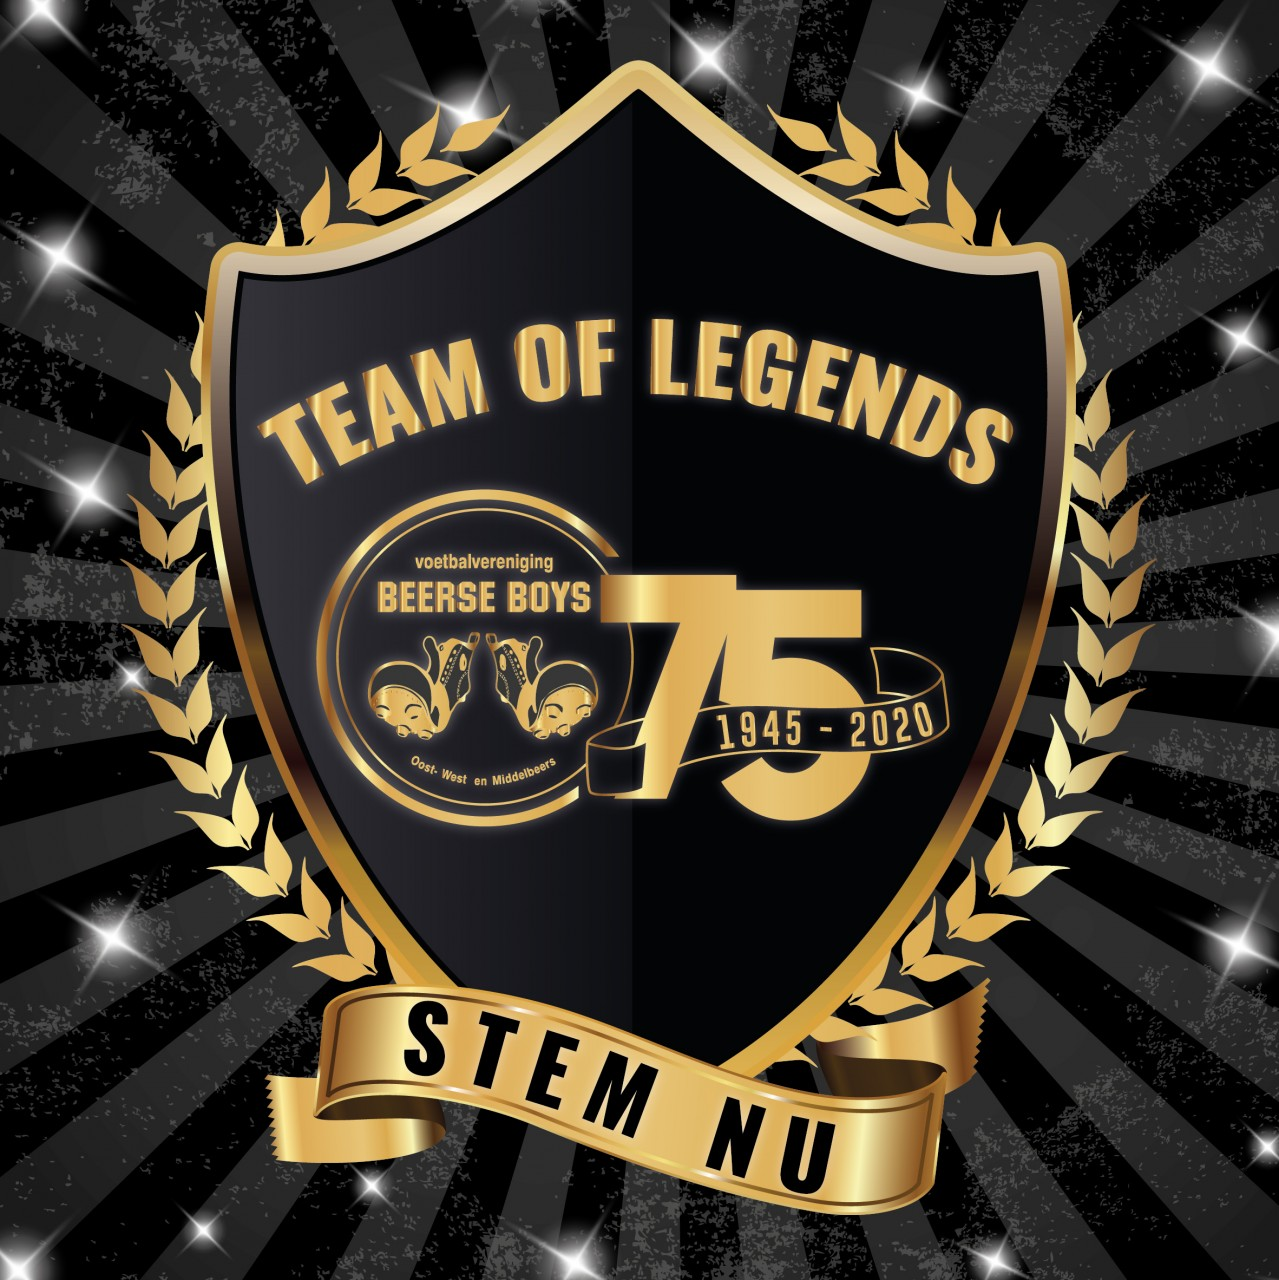 FB_Team_of_Legends